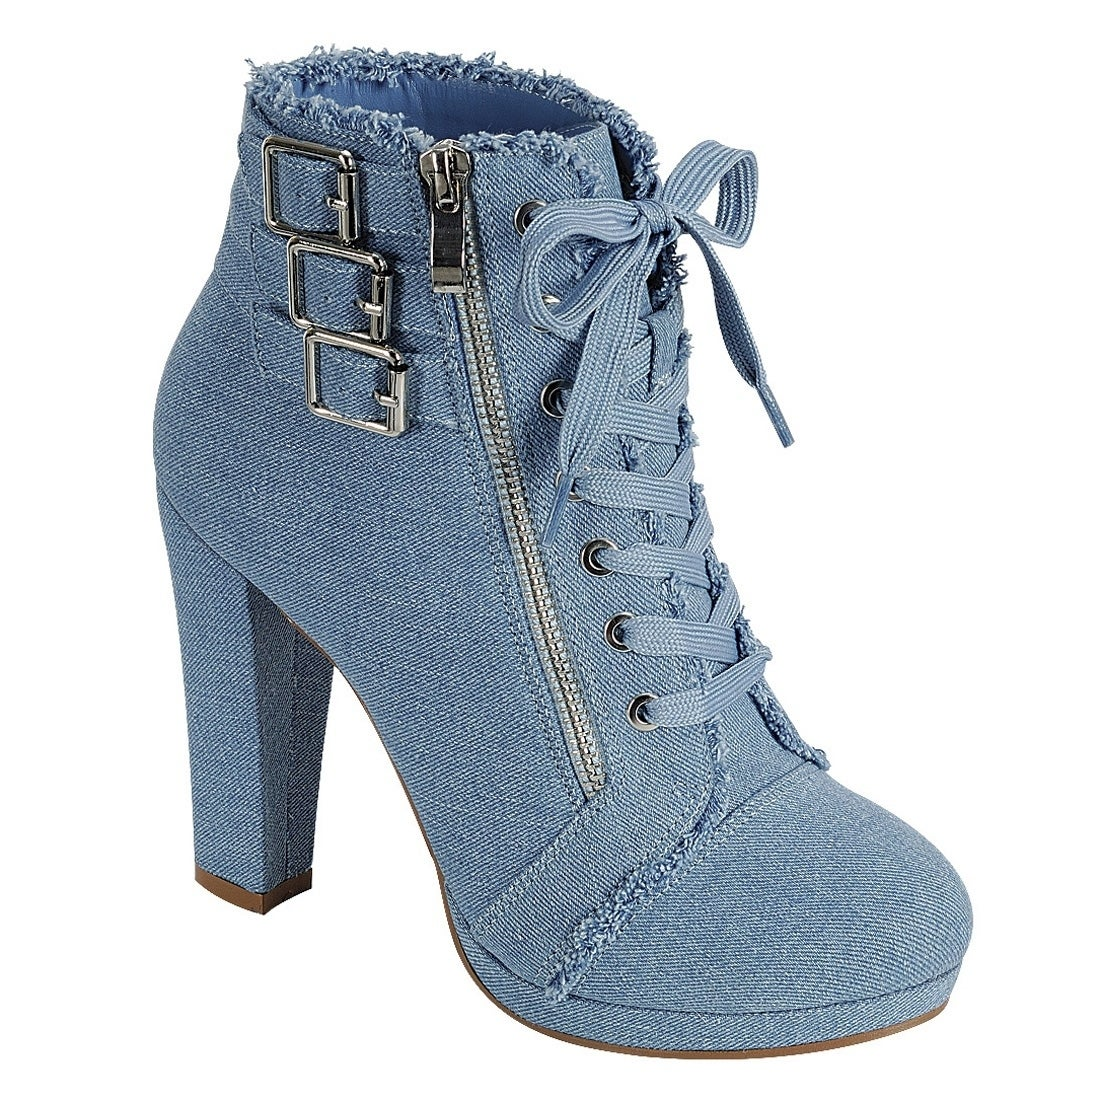 EI85 Women's Zipper Side Distressed Ripped Wrapped Chunky Heel Ankle Booties